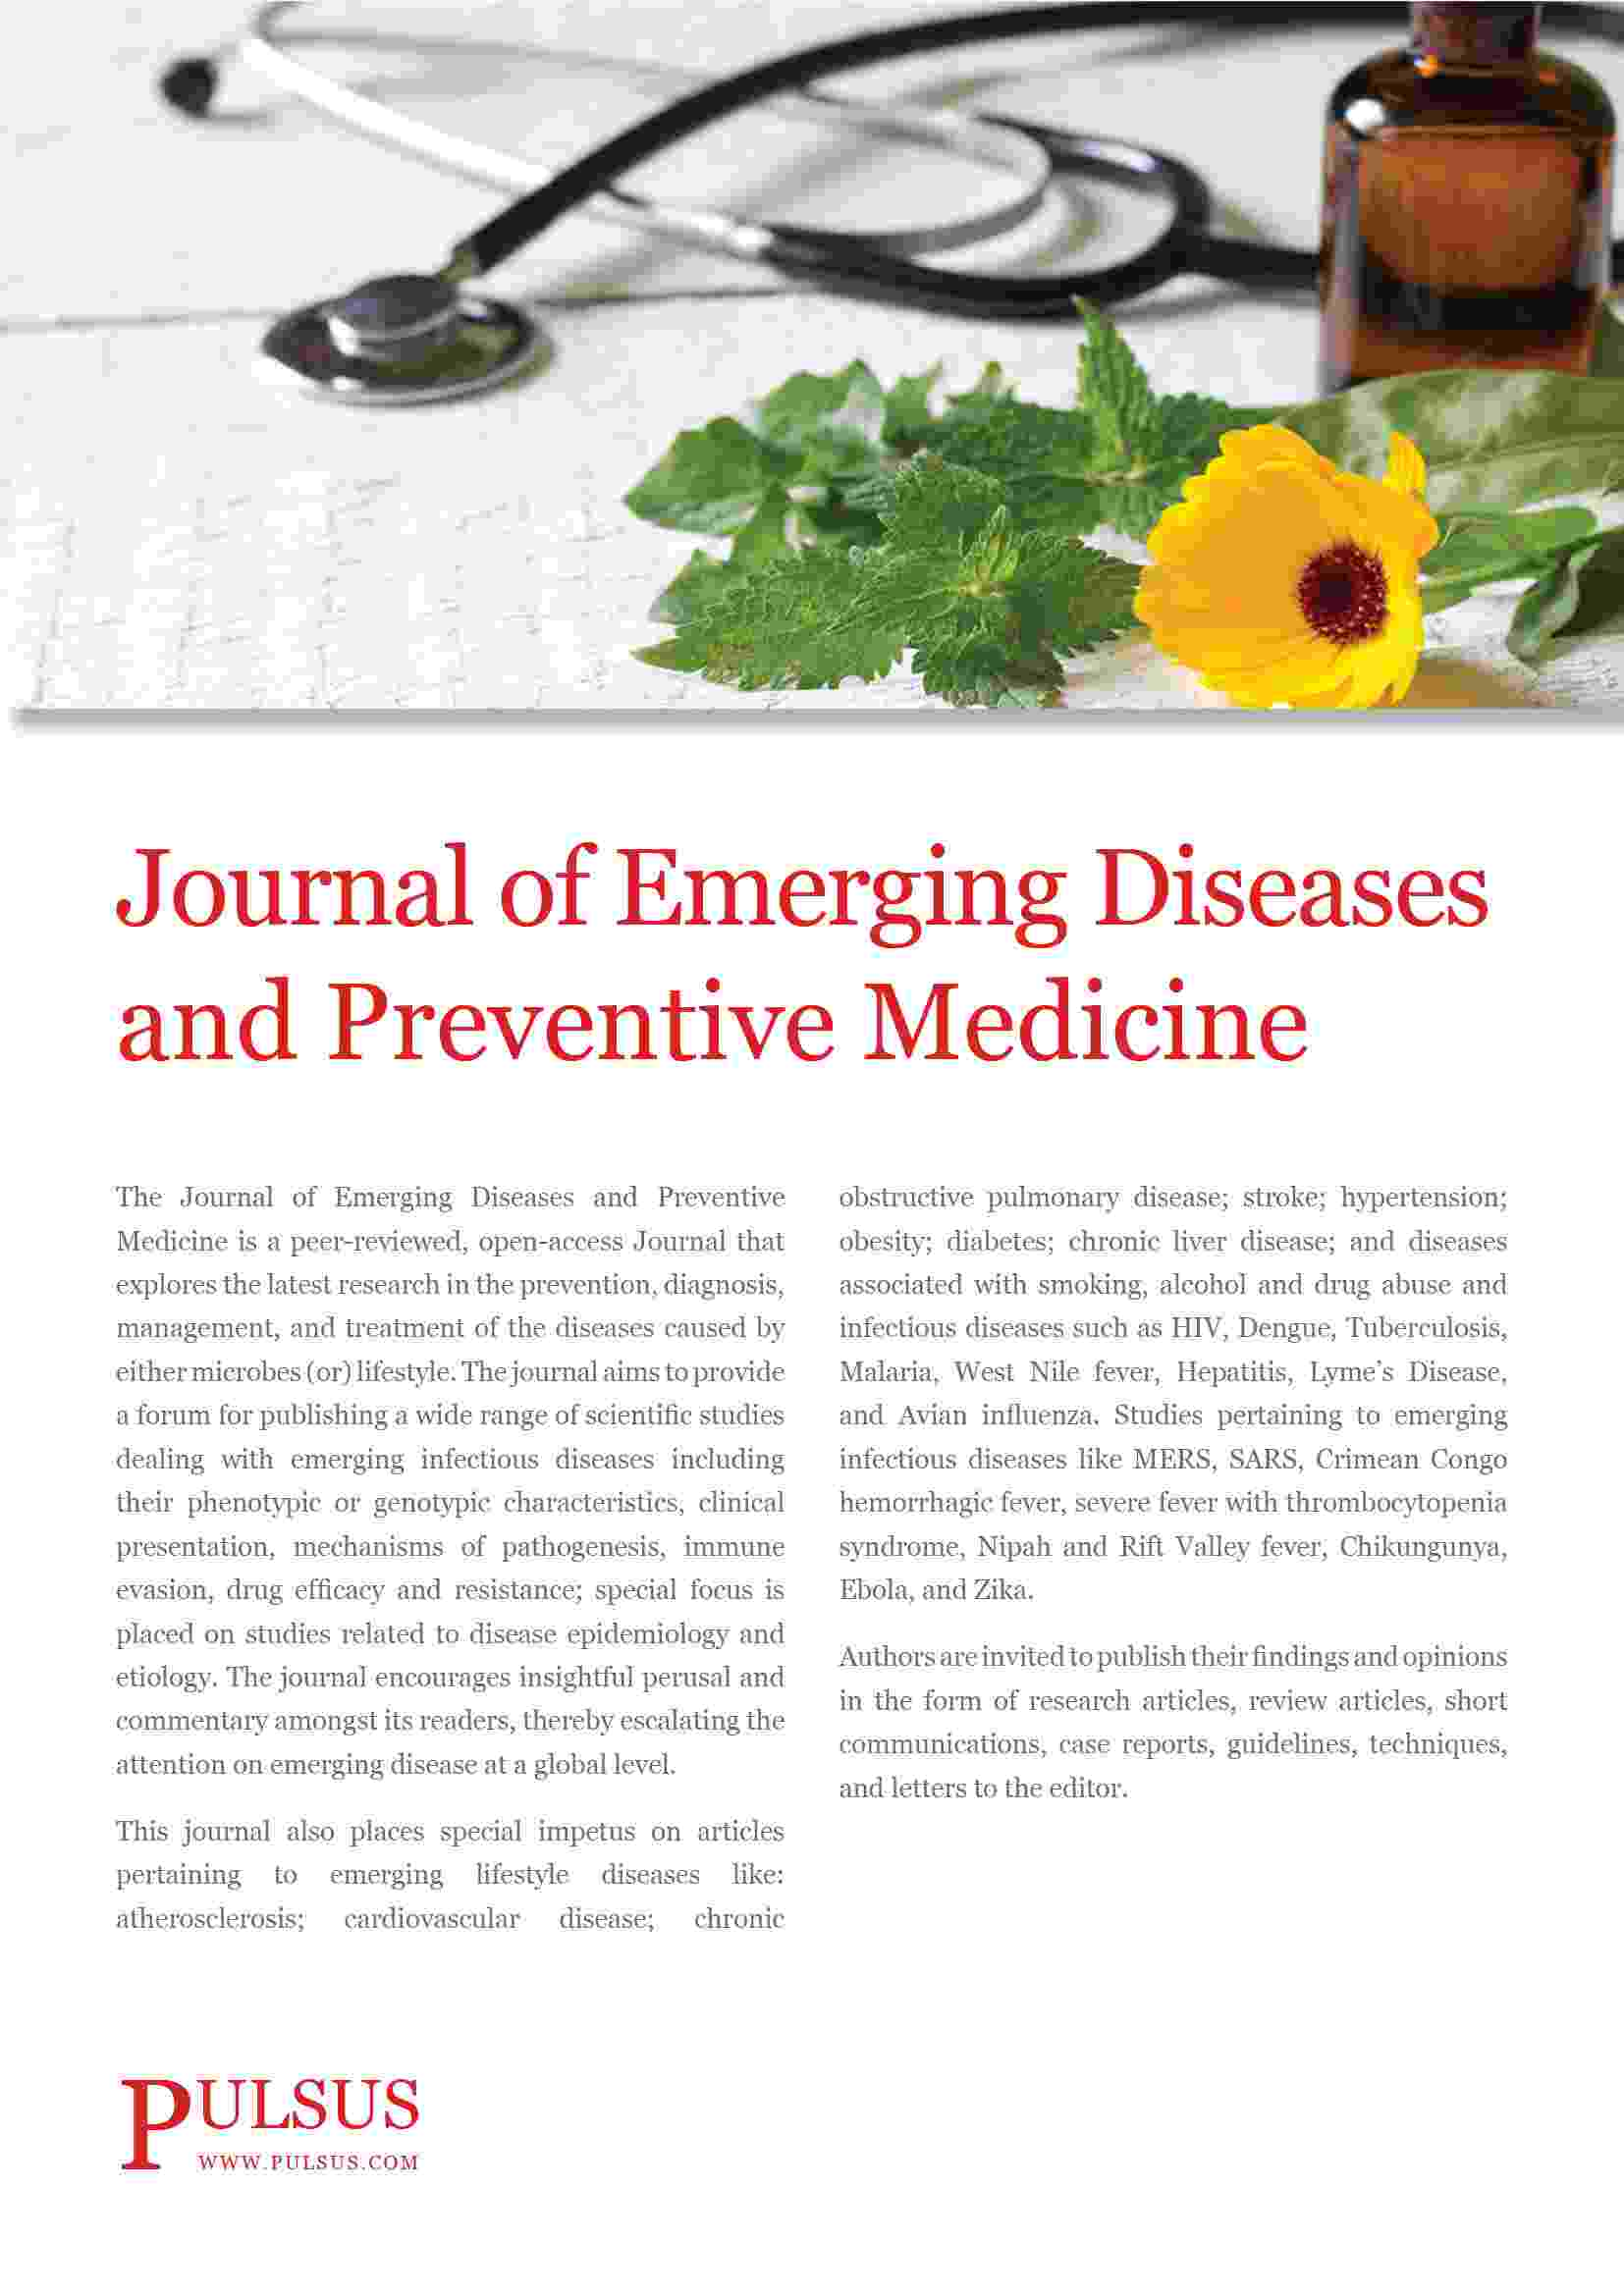 Chronic Diseases 2020- Journal of Emerging Diseases and Preventive Medicine